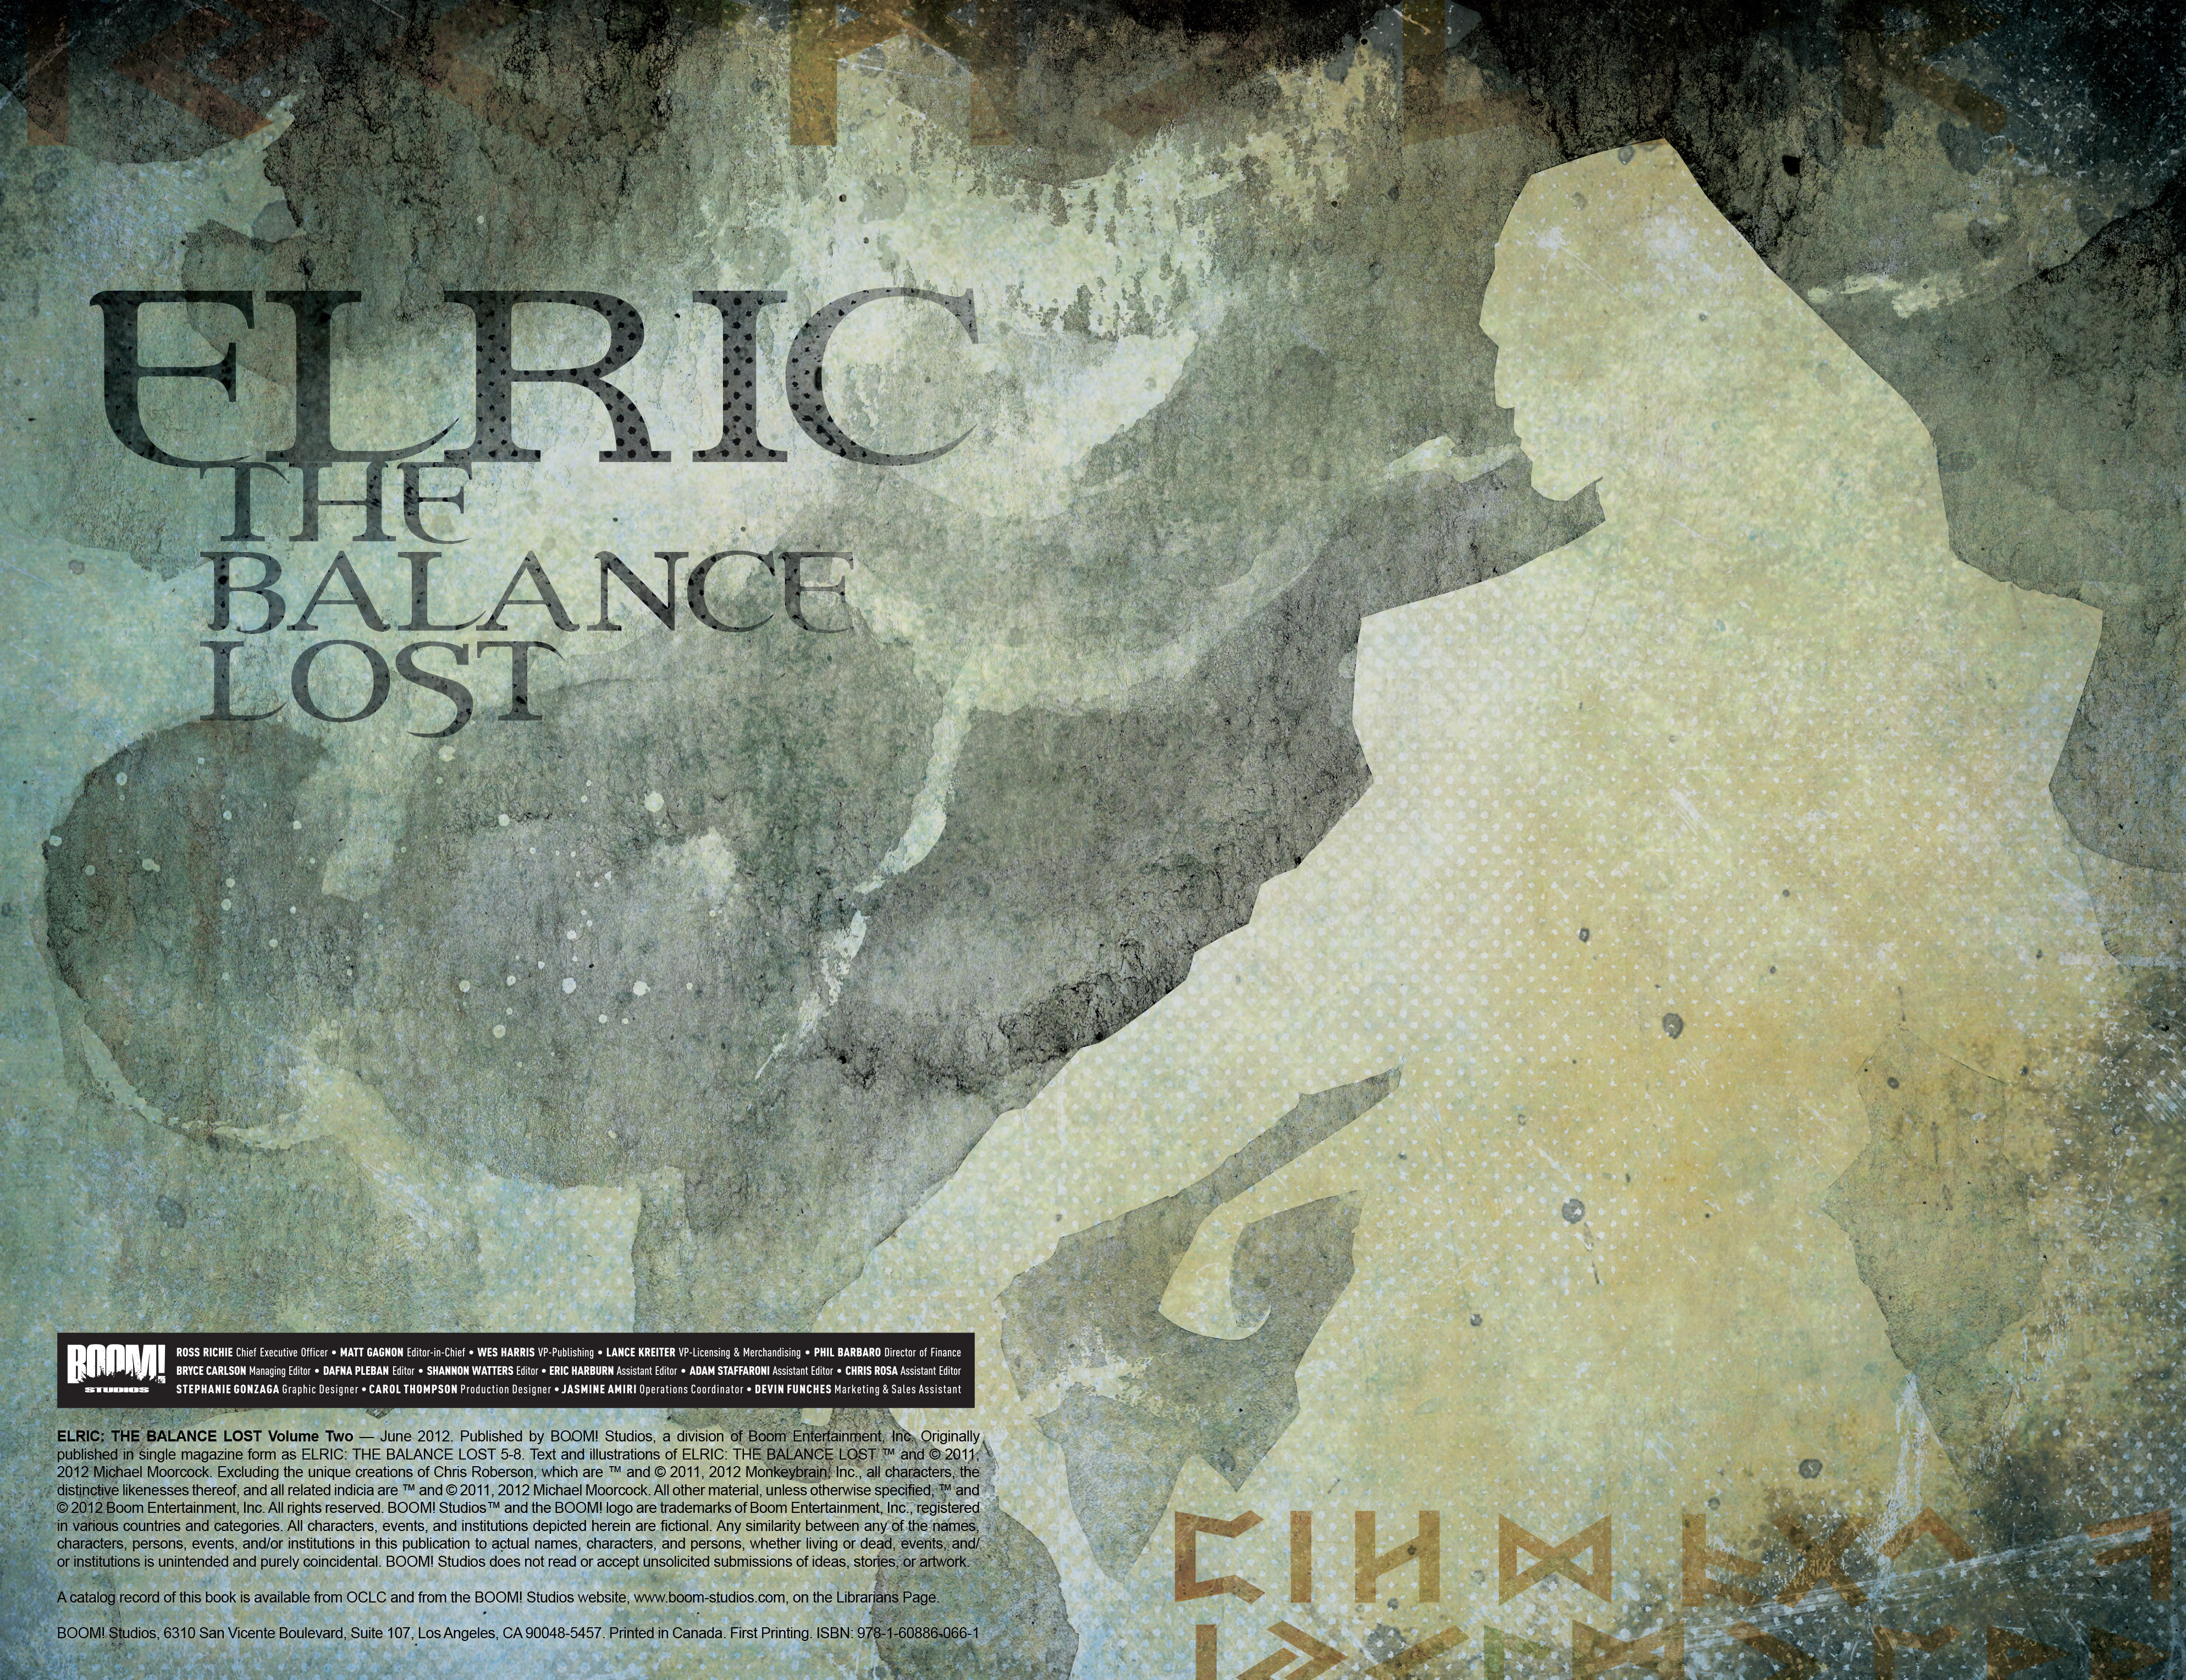 Read online Elric: The Balance Lost comic -  Issue # TPB 2 - 3